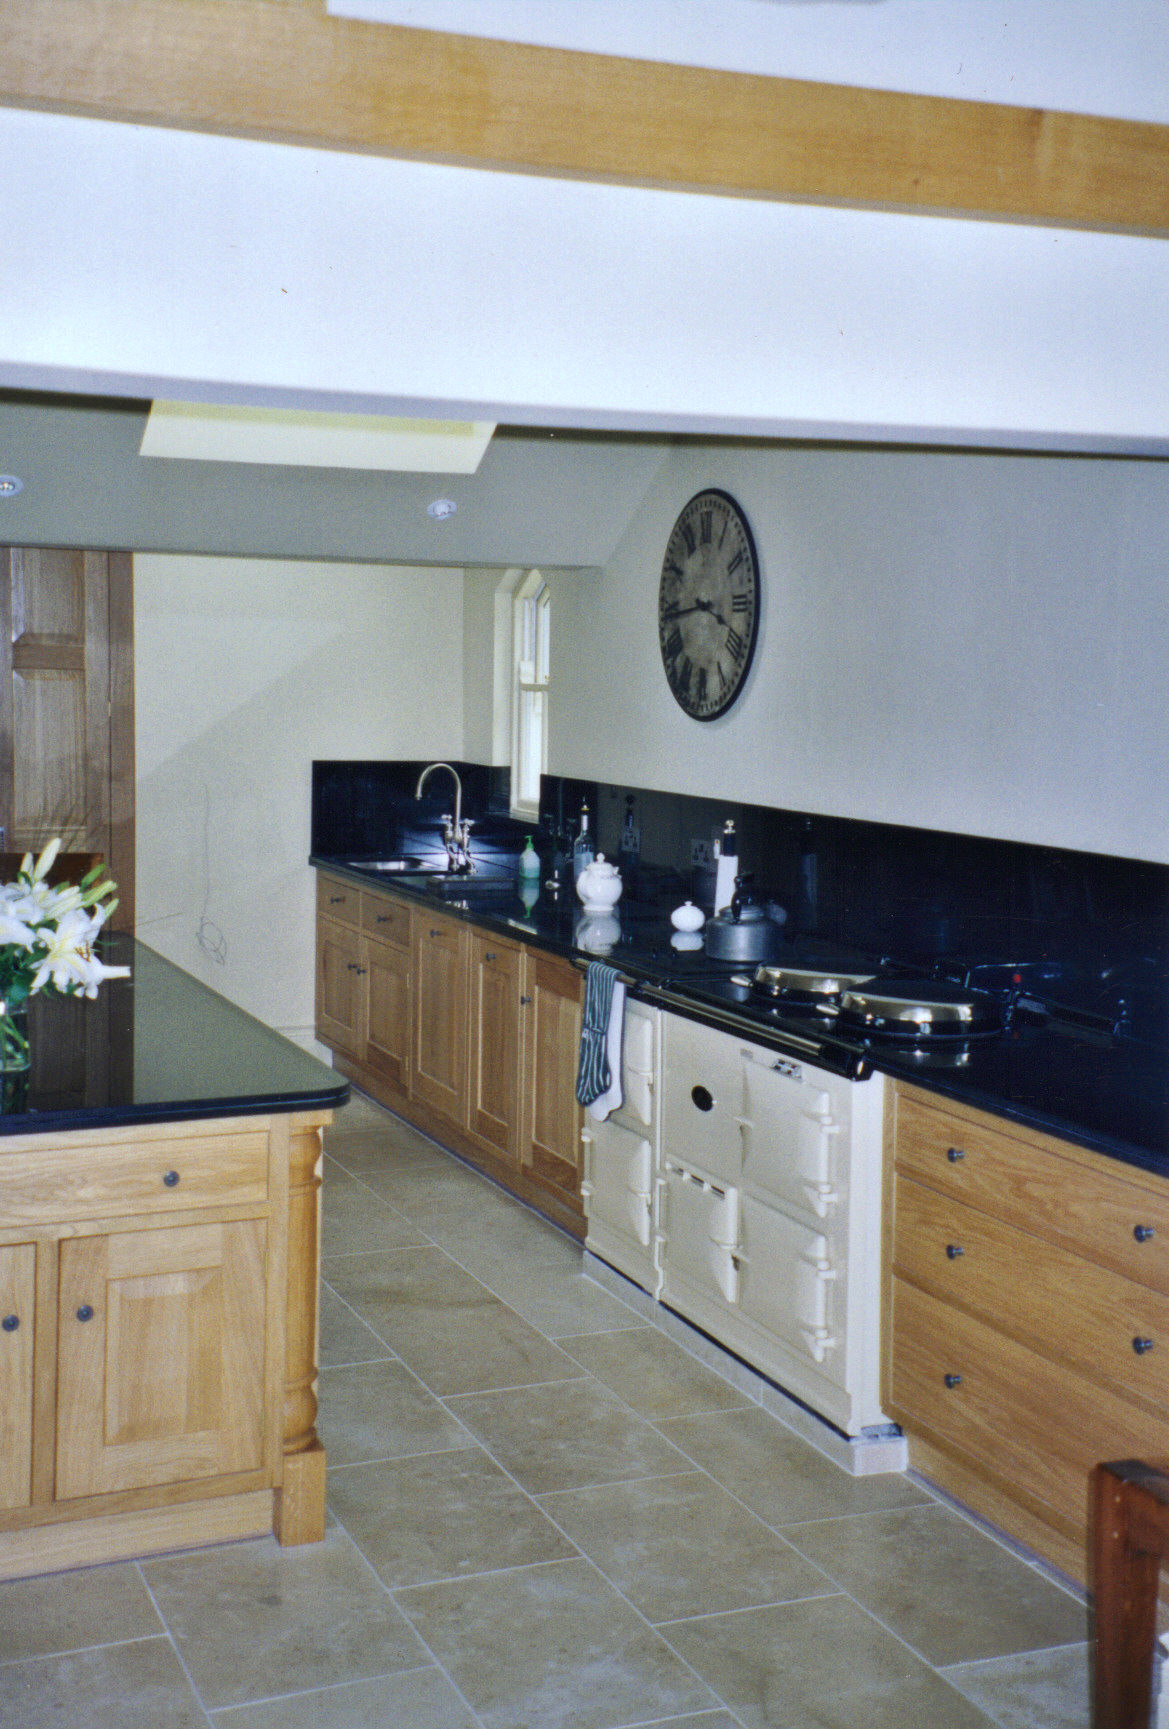 Run of kitchen units